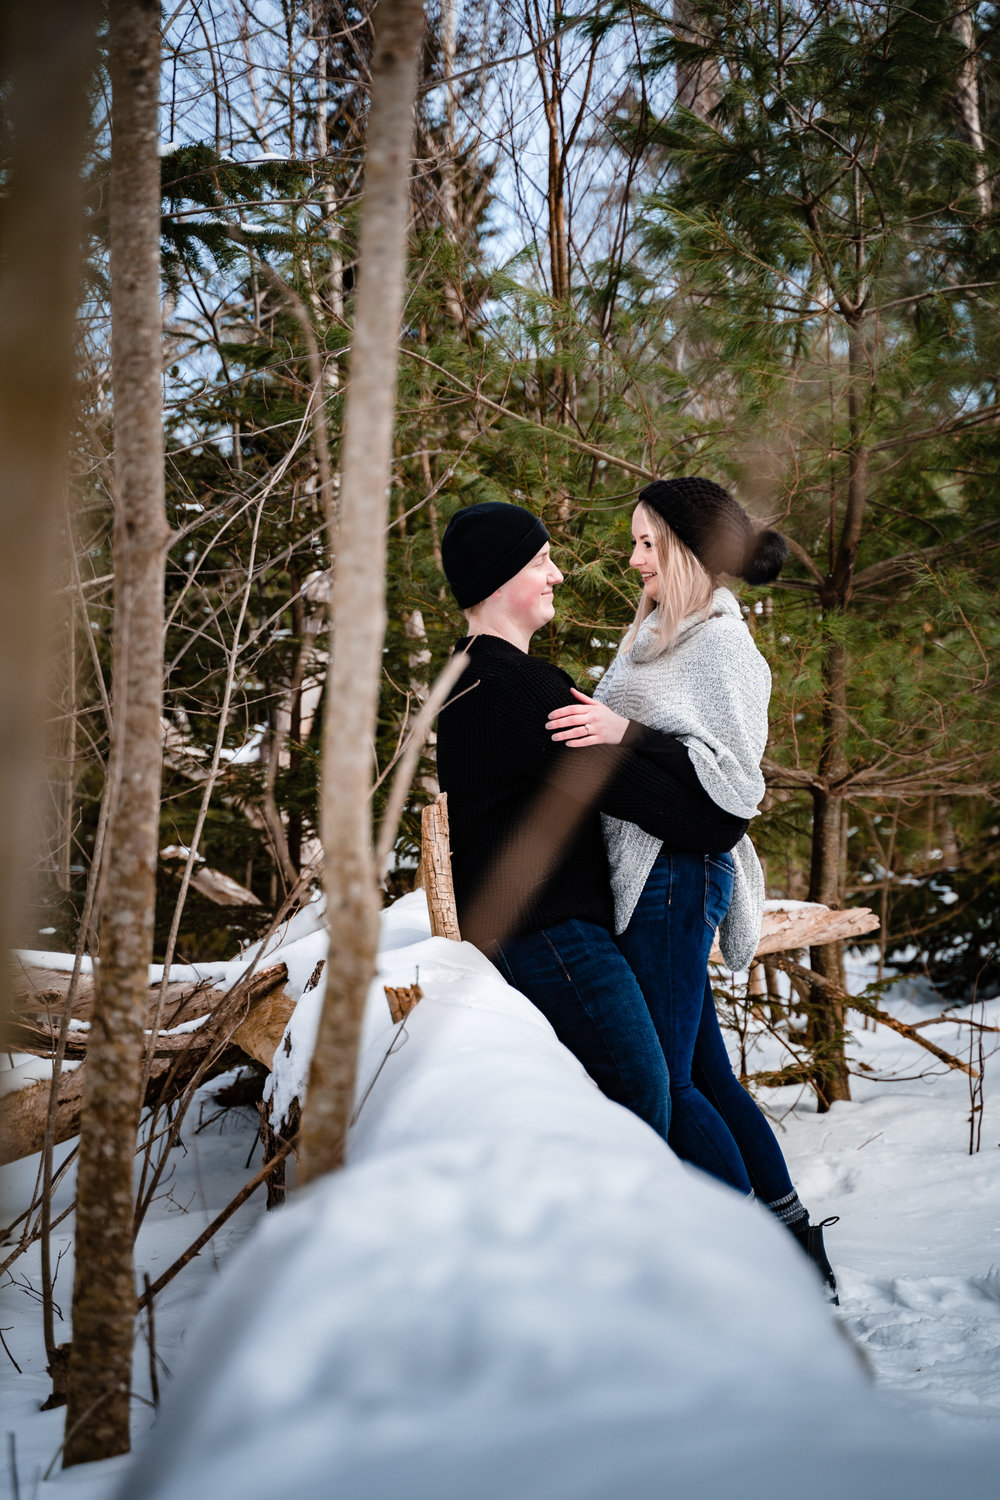 Haley&Brandon (21 of 64)halifax-novascotia-engagementphotography-wedding-foxandfellow-Ottawa-winter.jpg